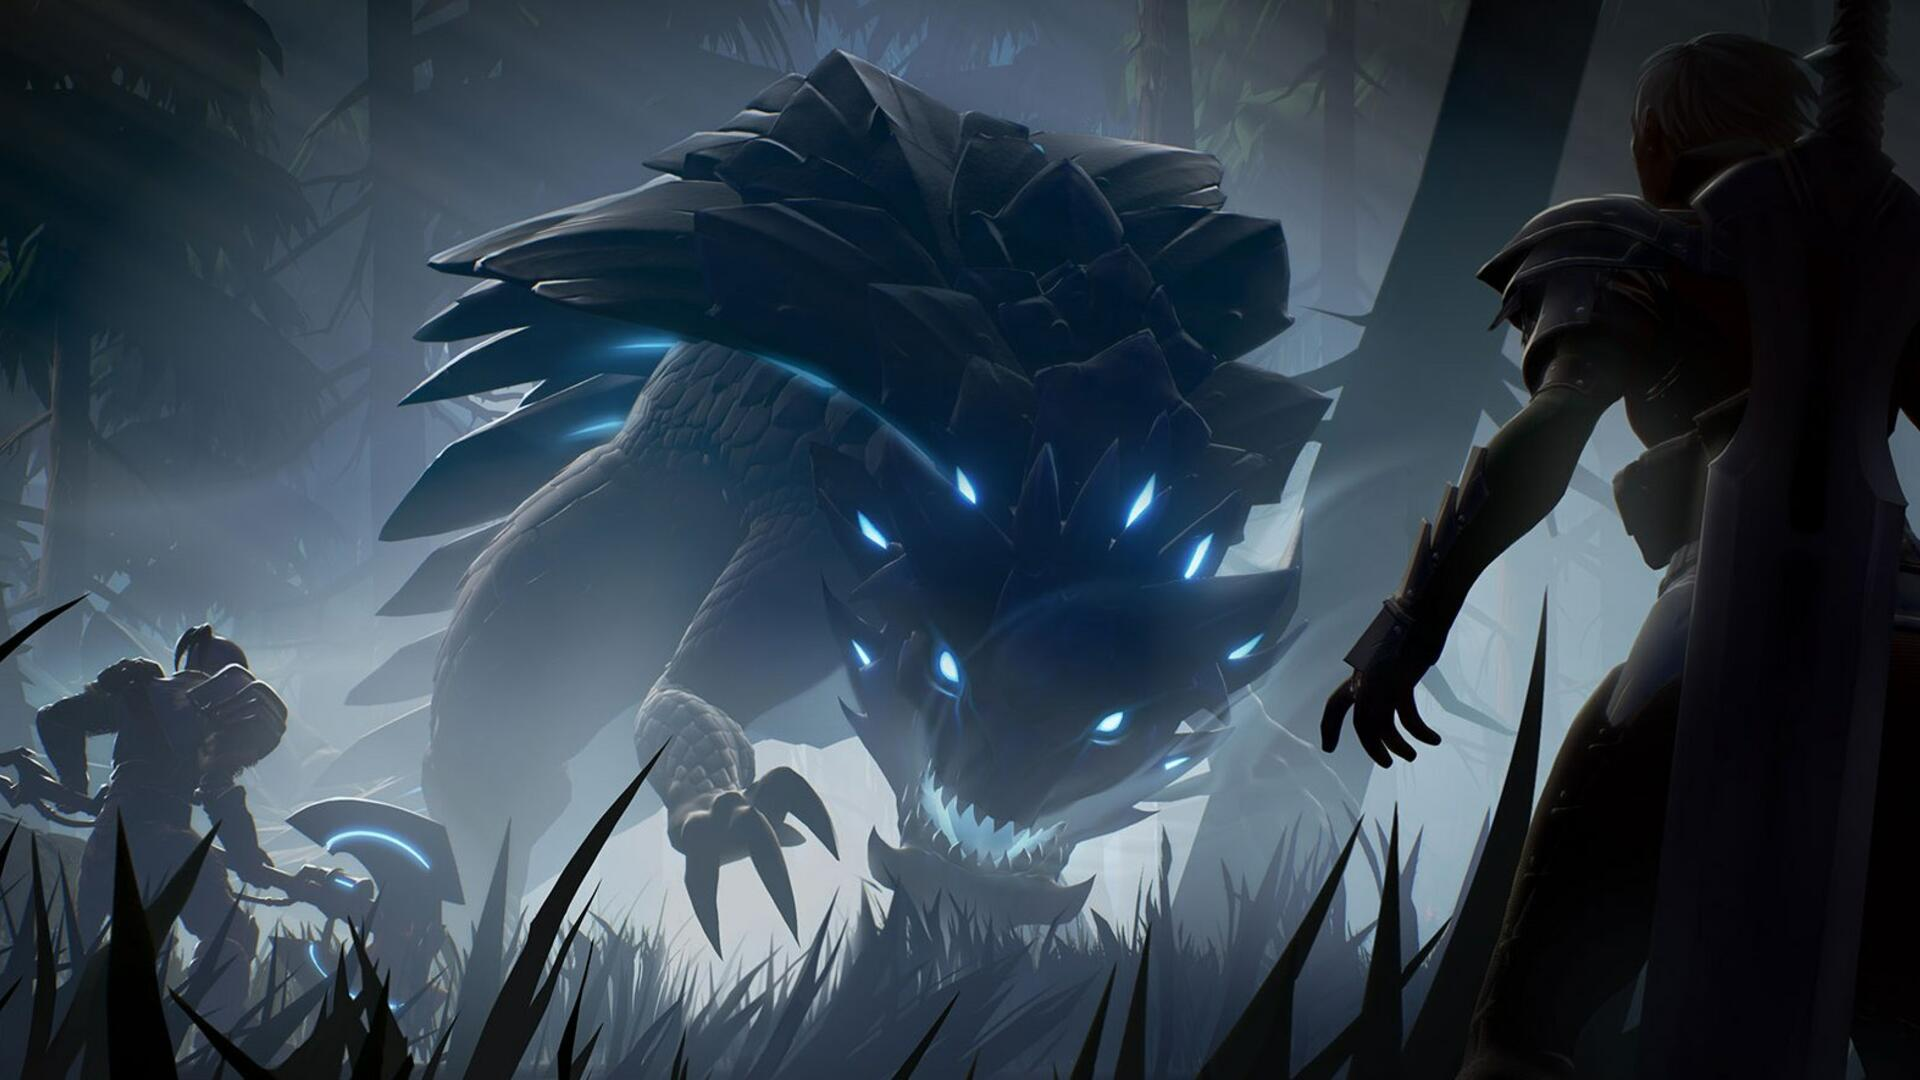 Dauntless Best Weapons - The Best Dauntless Weapons and Damage Stats